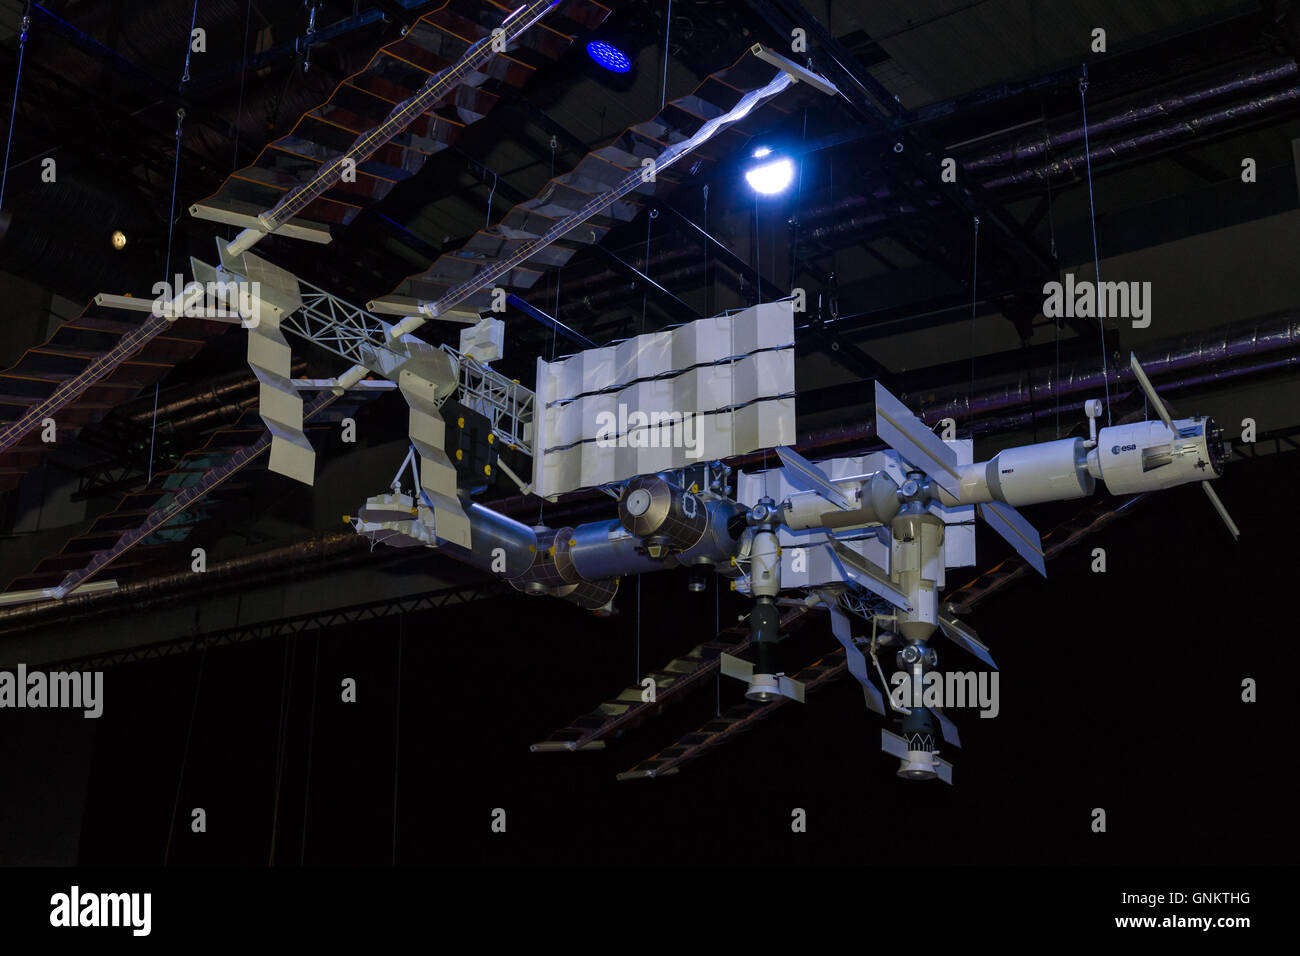 BERLIN, GERMANY - JUNE 03, 2016: Model of the International Space Station (ISS). Exhibition ILA Berlin Air Show - Stock Image